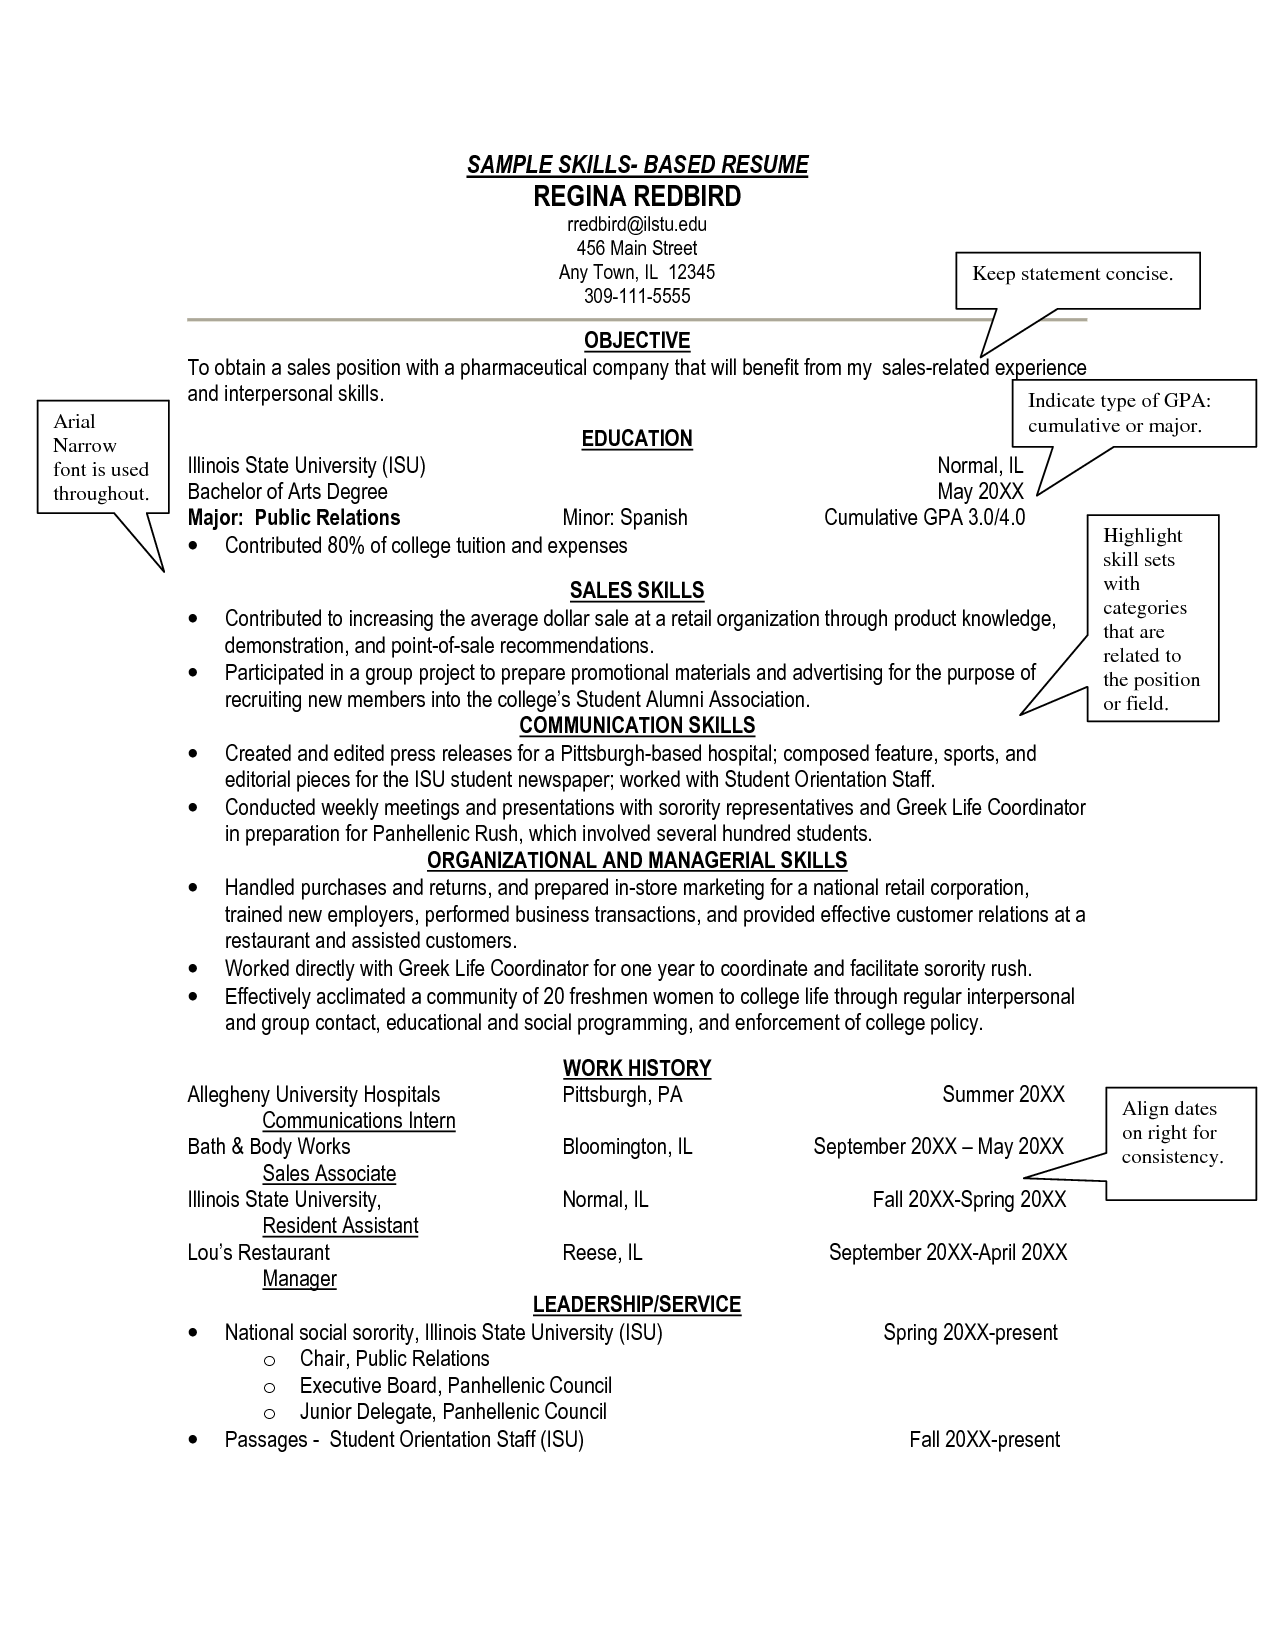 Examples Of Skills For Resume Fair Sample Skills Resume Template  Interview  Pinterest  Sample .